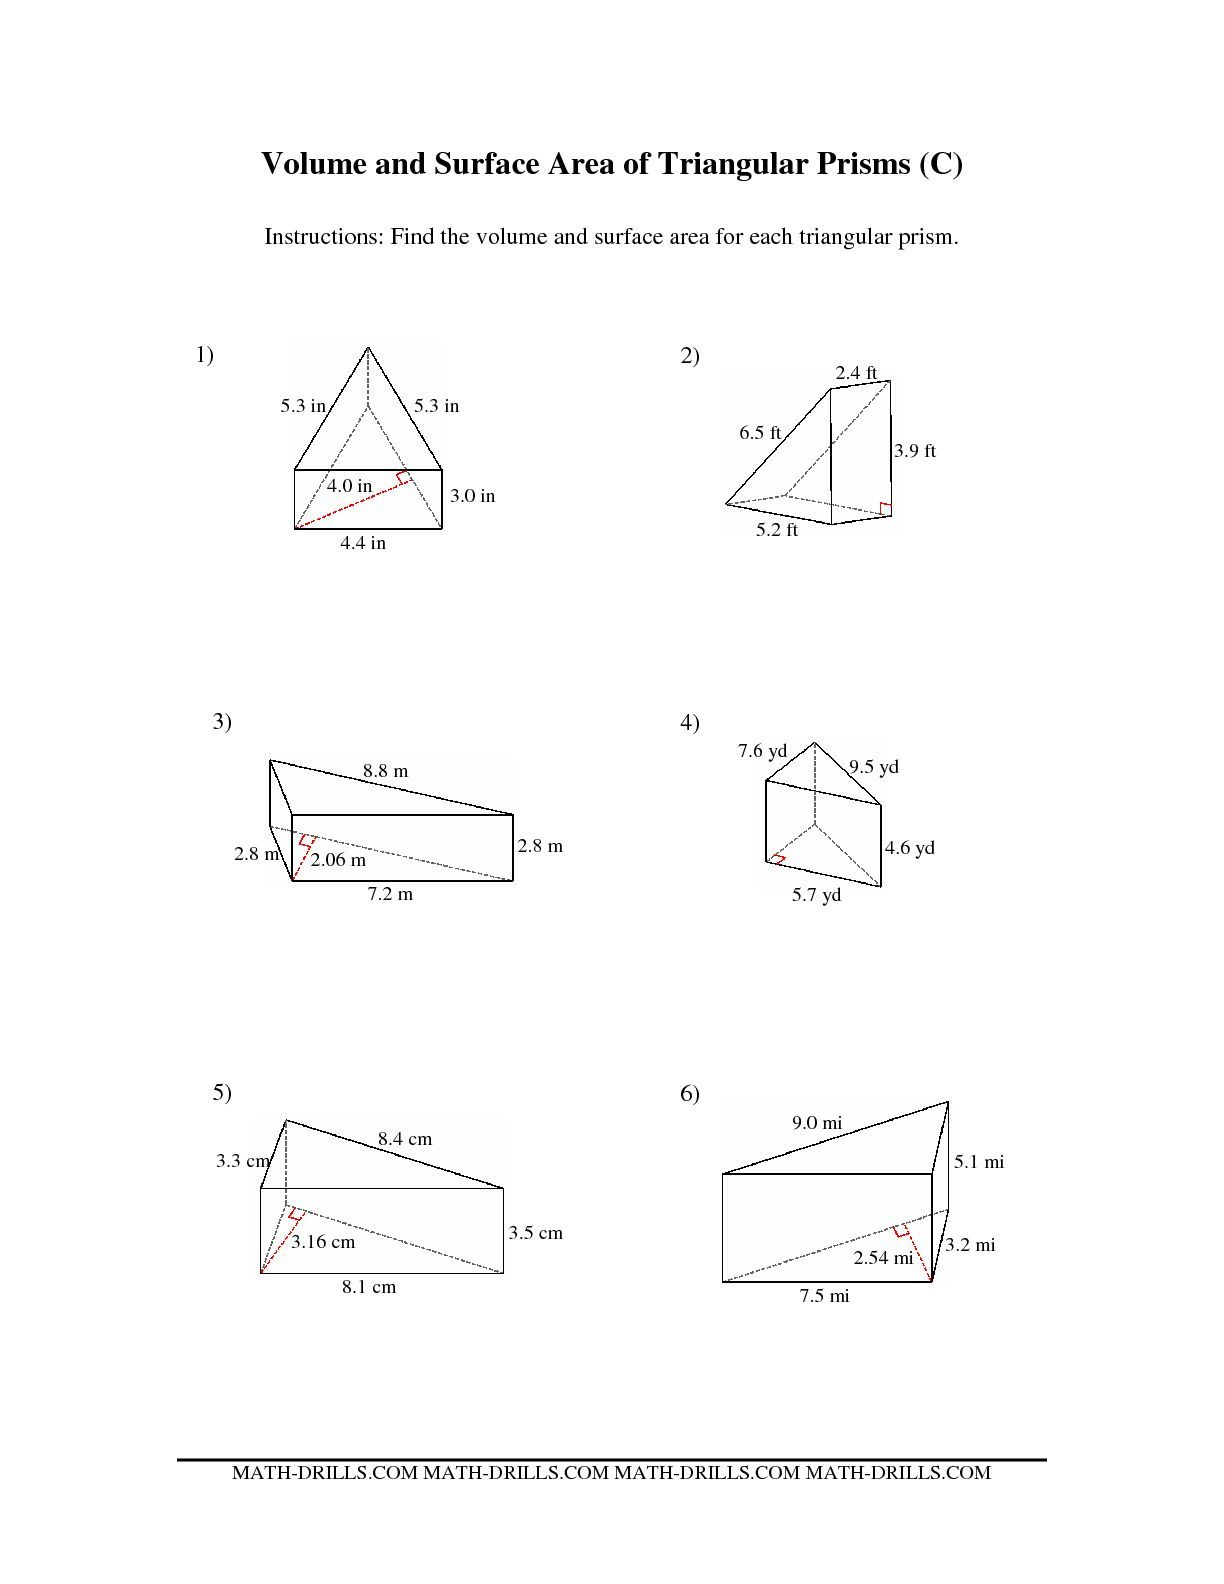 Volume Of Triangular Prism Worksheet Answer Key